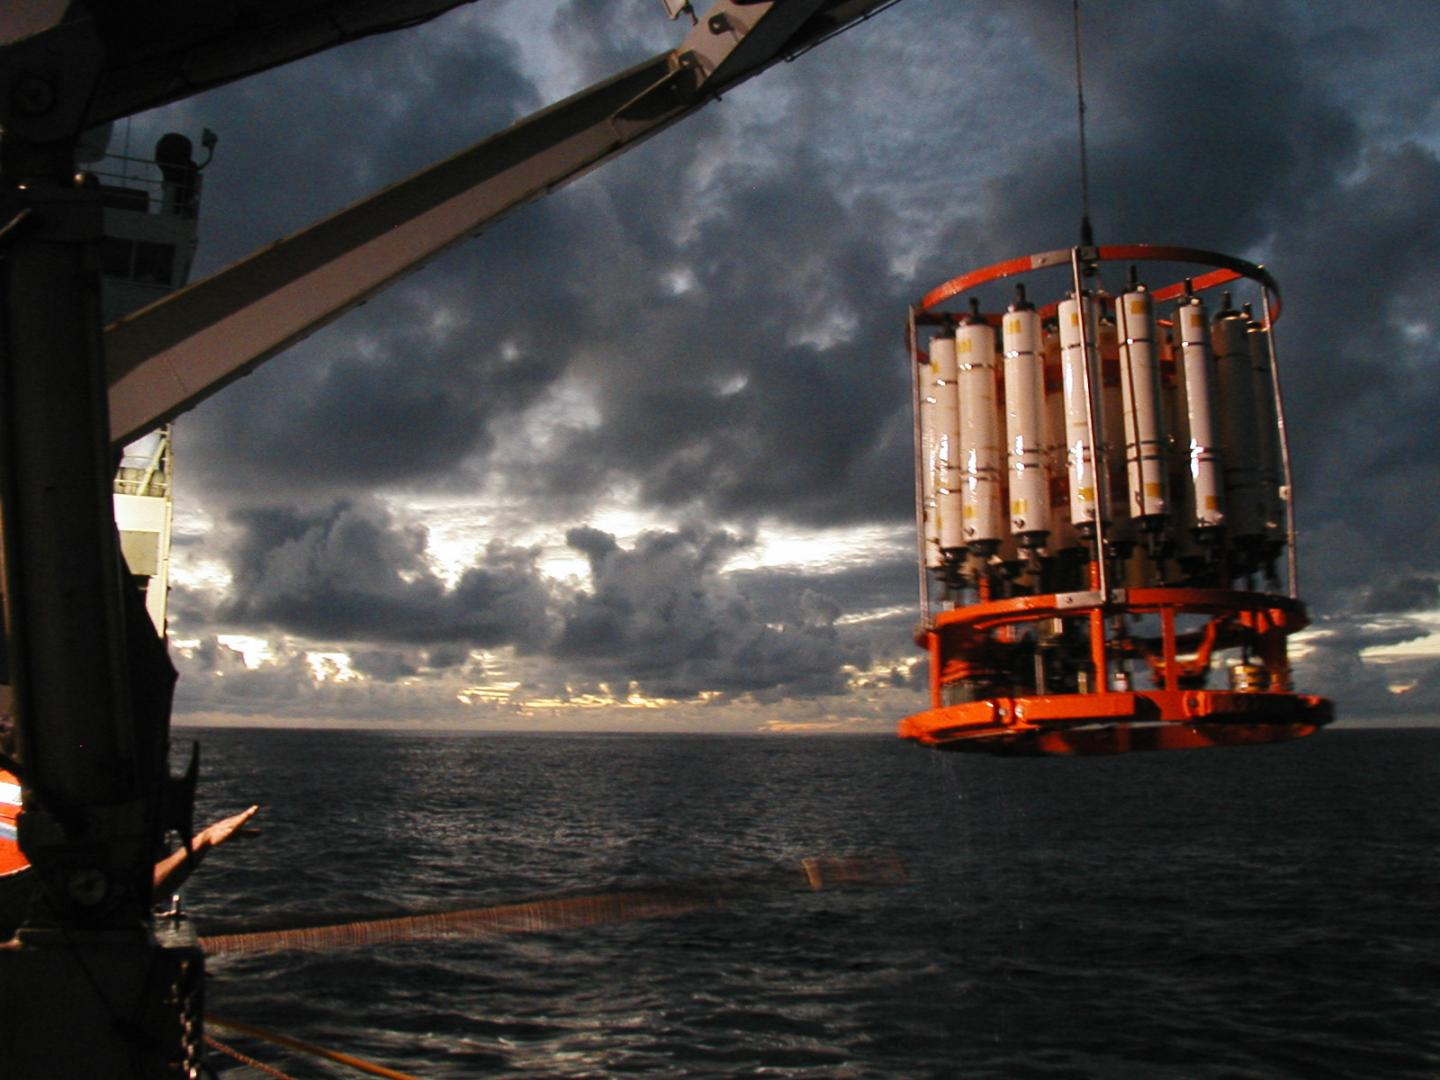 Dusk CTD recovery, South Pacific